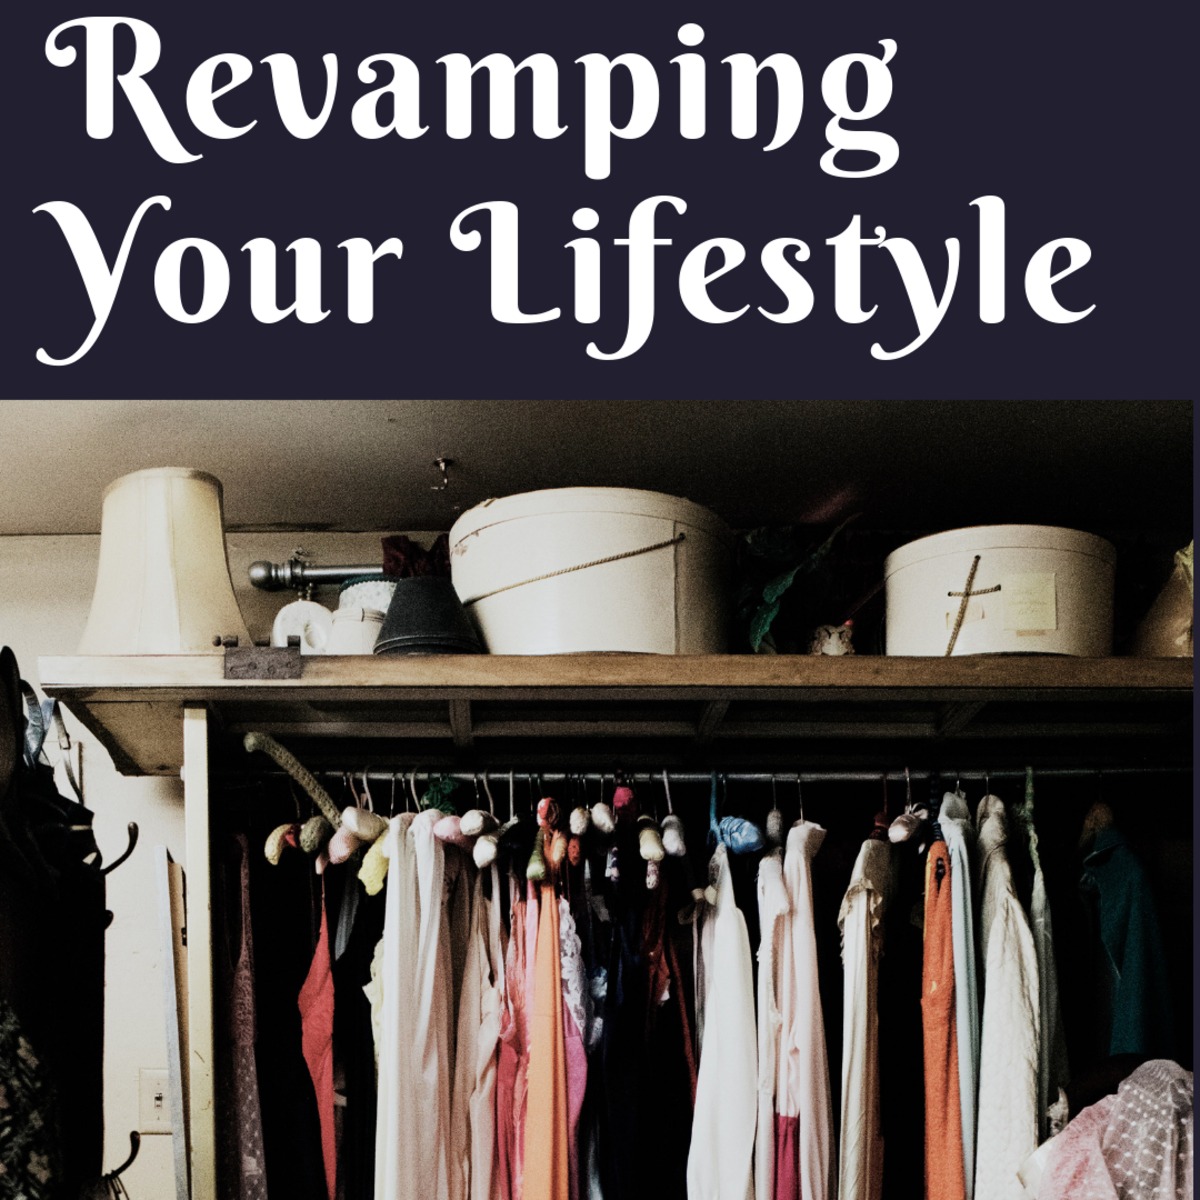 Revamp your lifestyle by starting with your closet